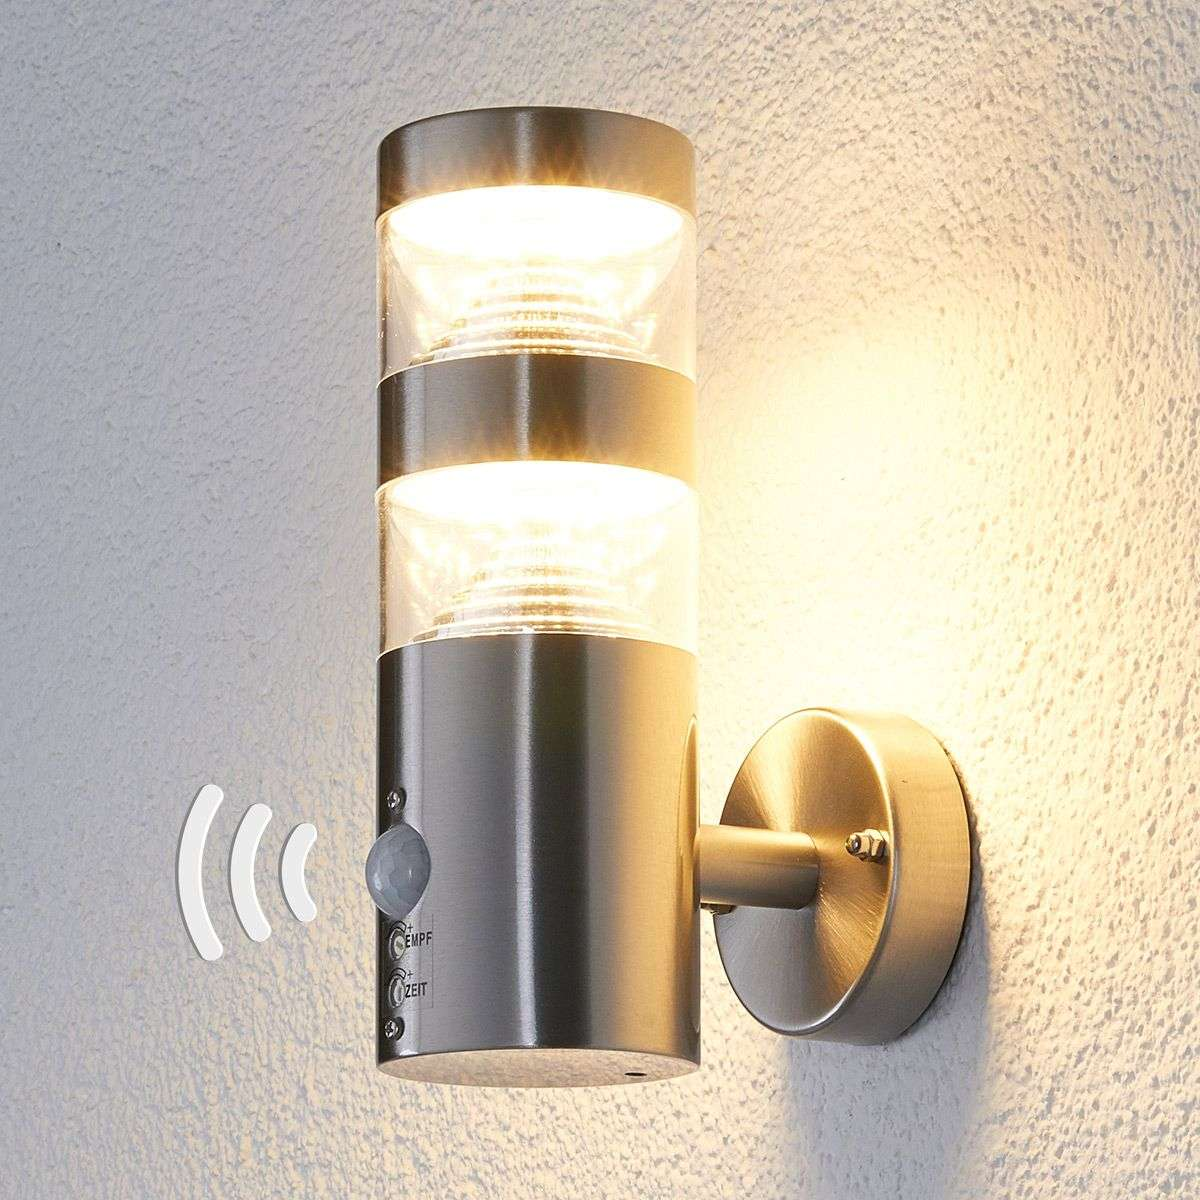 Outside Wall Lights With Sensor : LED outdoor wall light Lanea with motion sensor Lights.co.uk